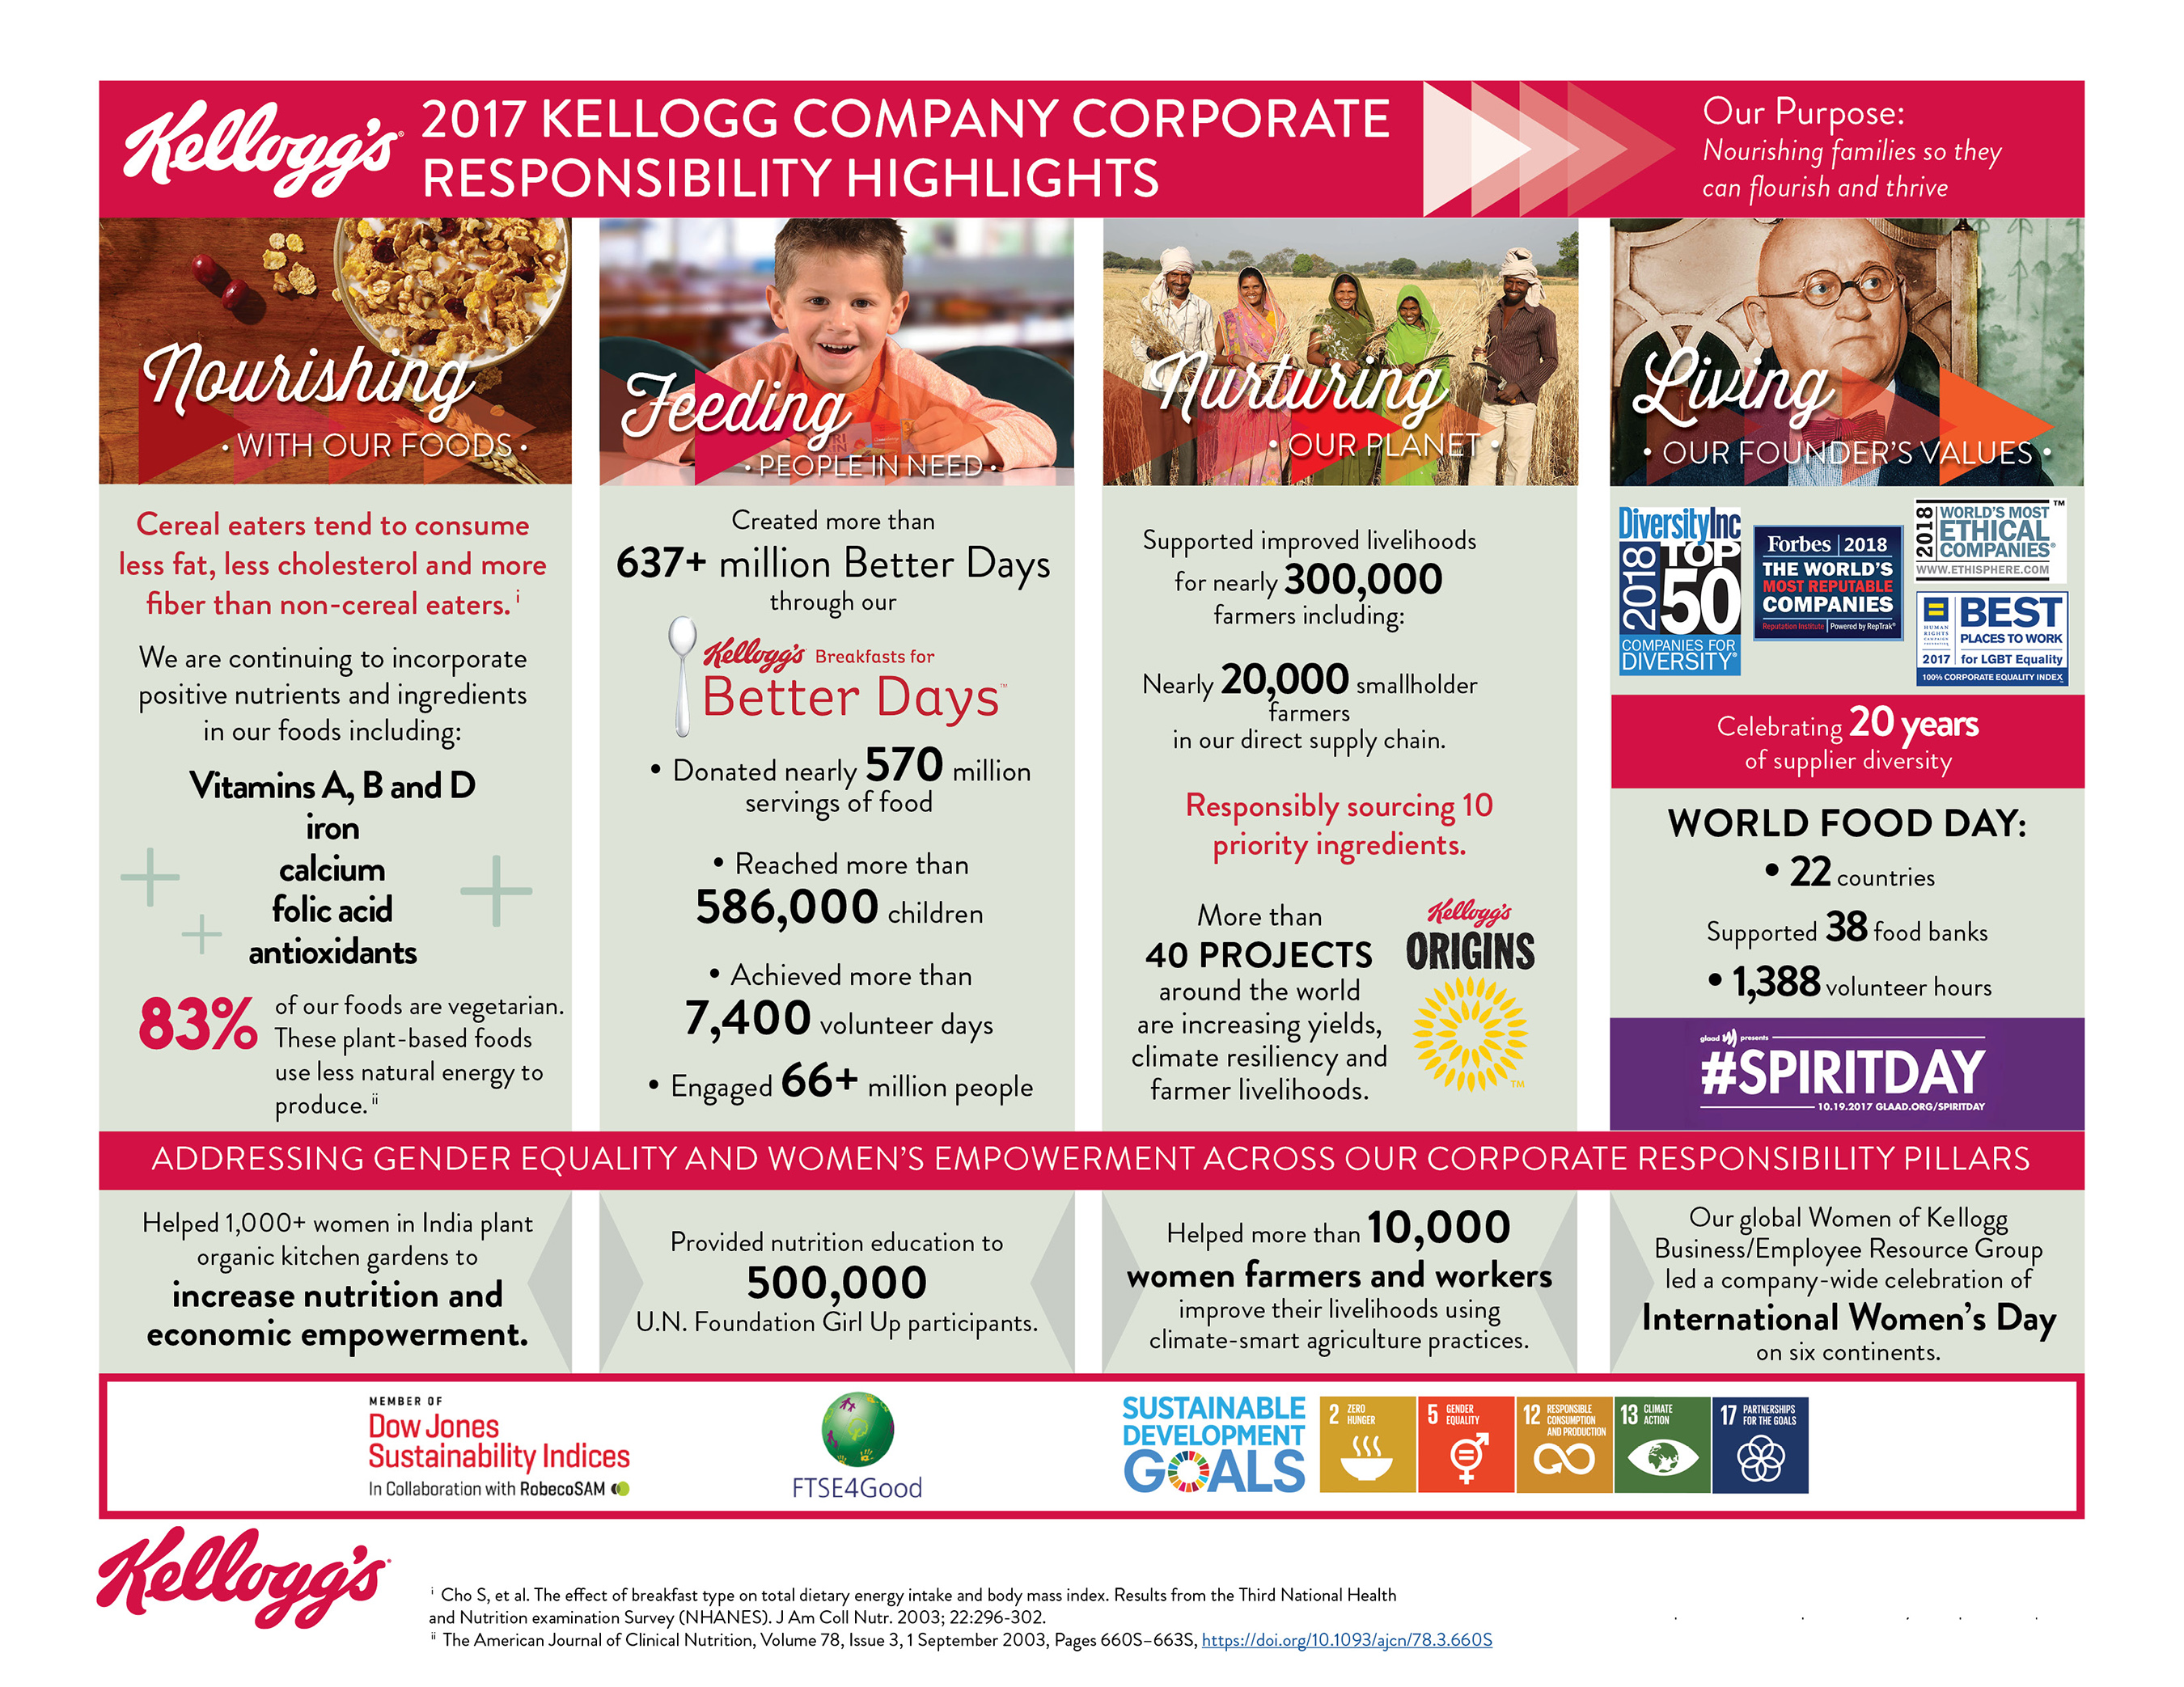 2017 Kellogg Company Corporate Responsibility Highlights Infographic